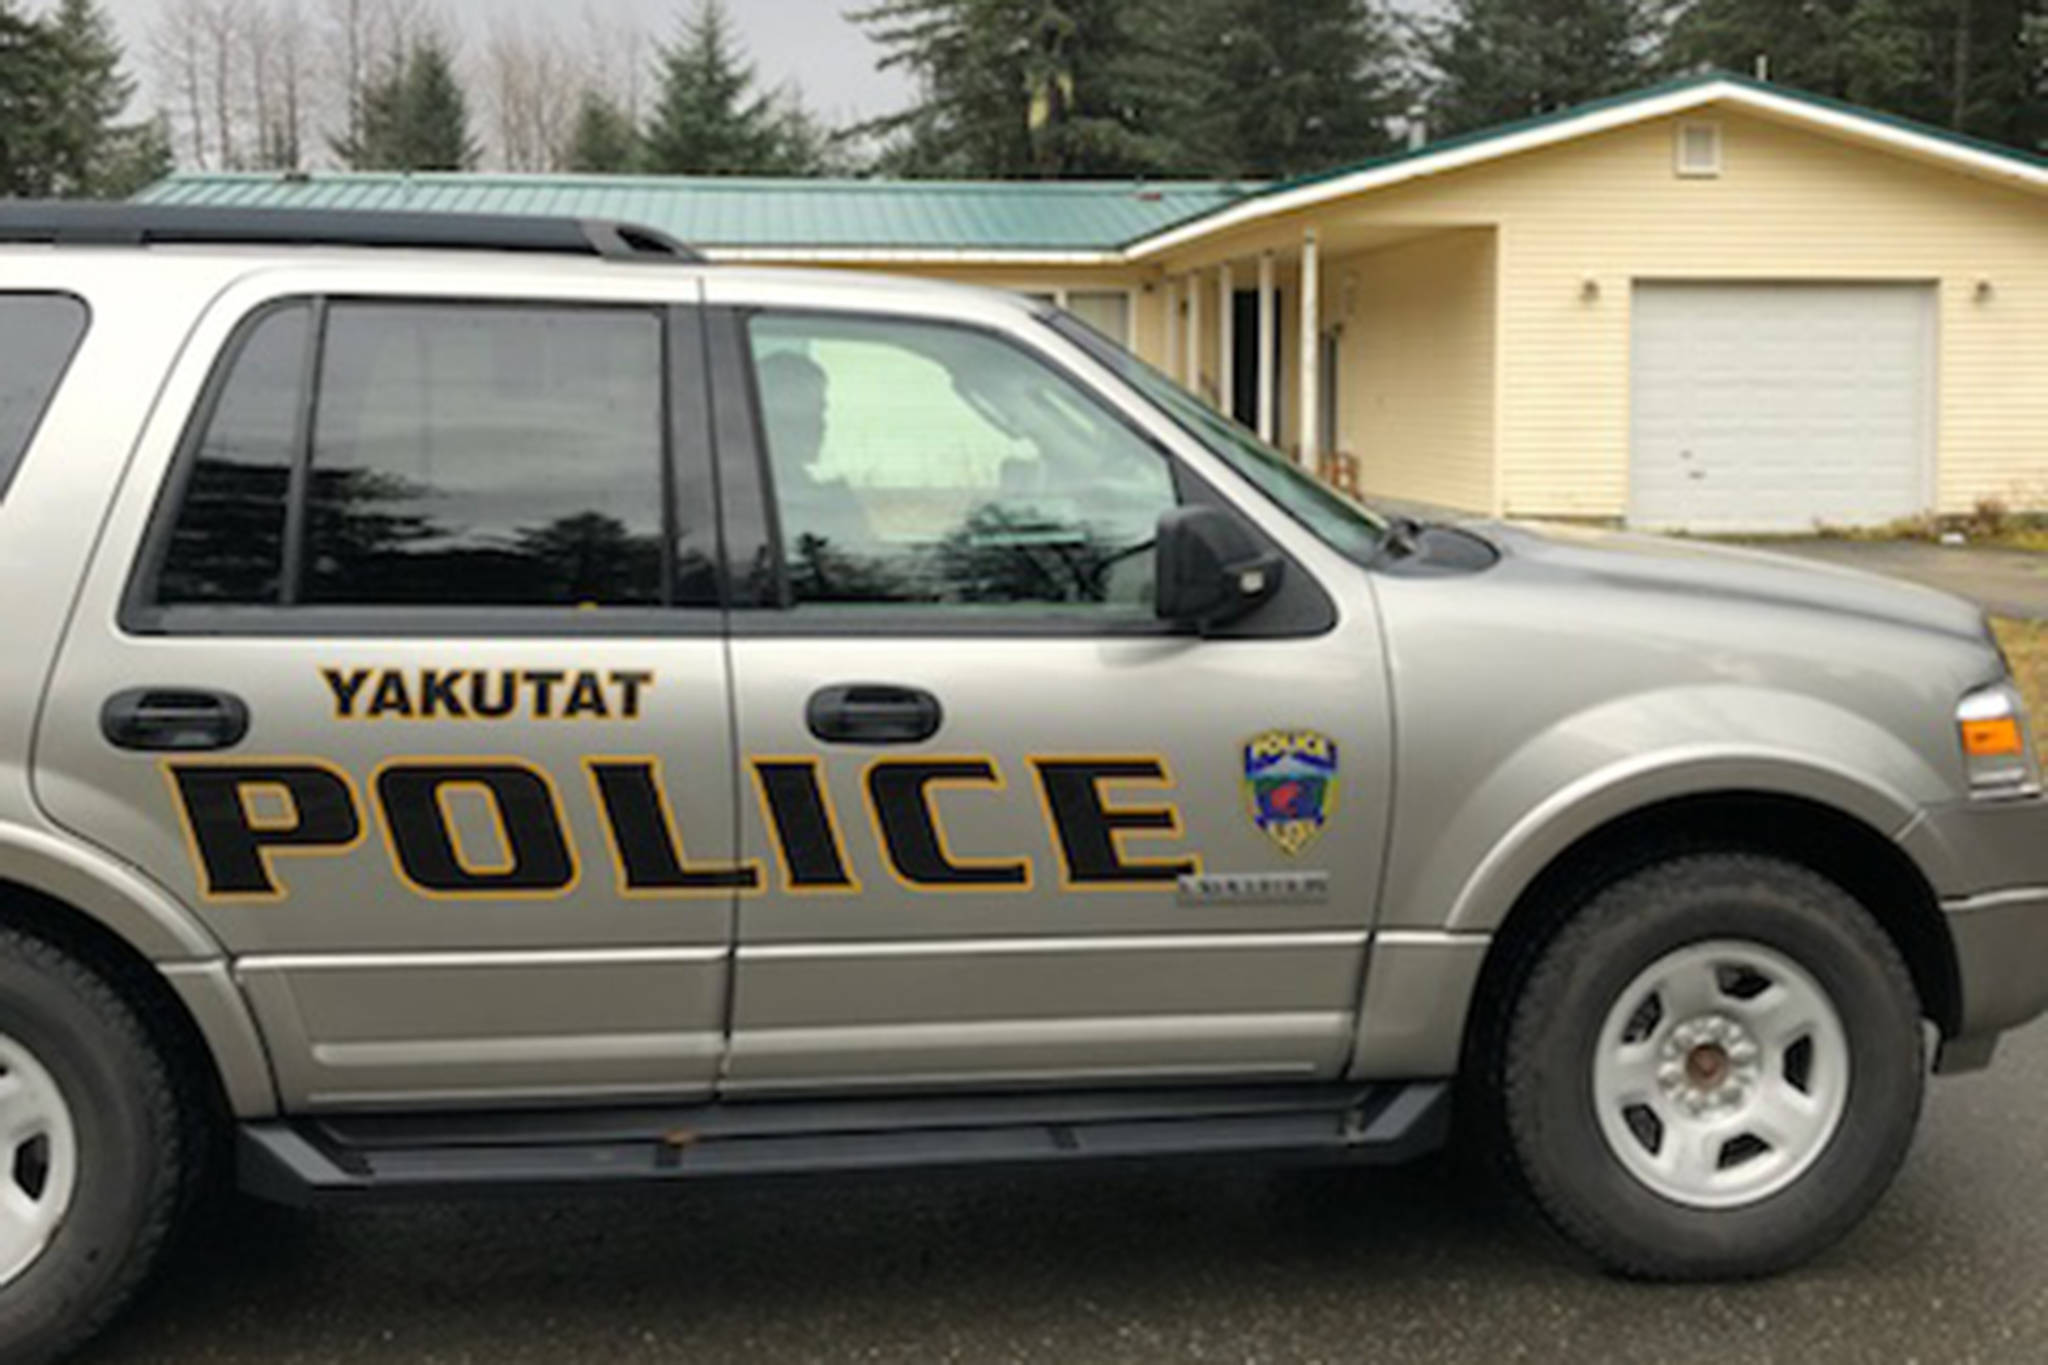 A Yakutat Borough Police Department vehicle sits in front of the site of a fatal stabbing in Yakutat on Sunday, Oct. 14, 2018. (Courtesy Photo | Yakutat Borough Police Department)